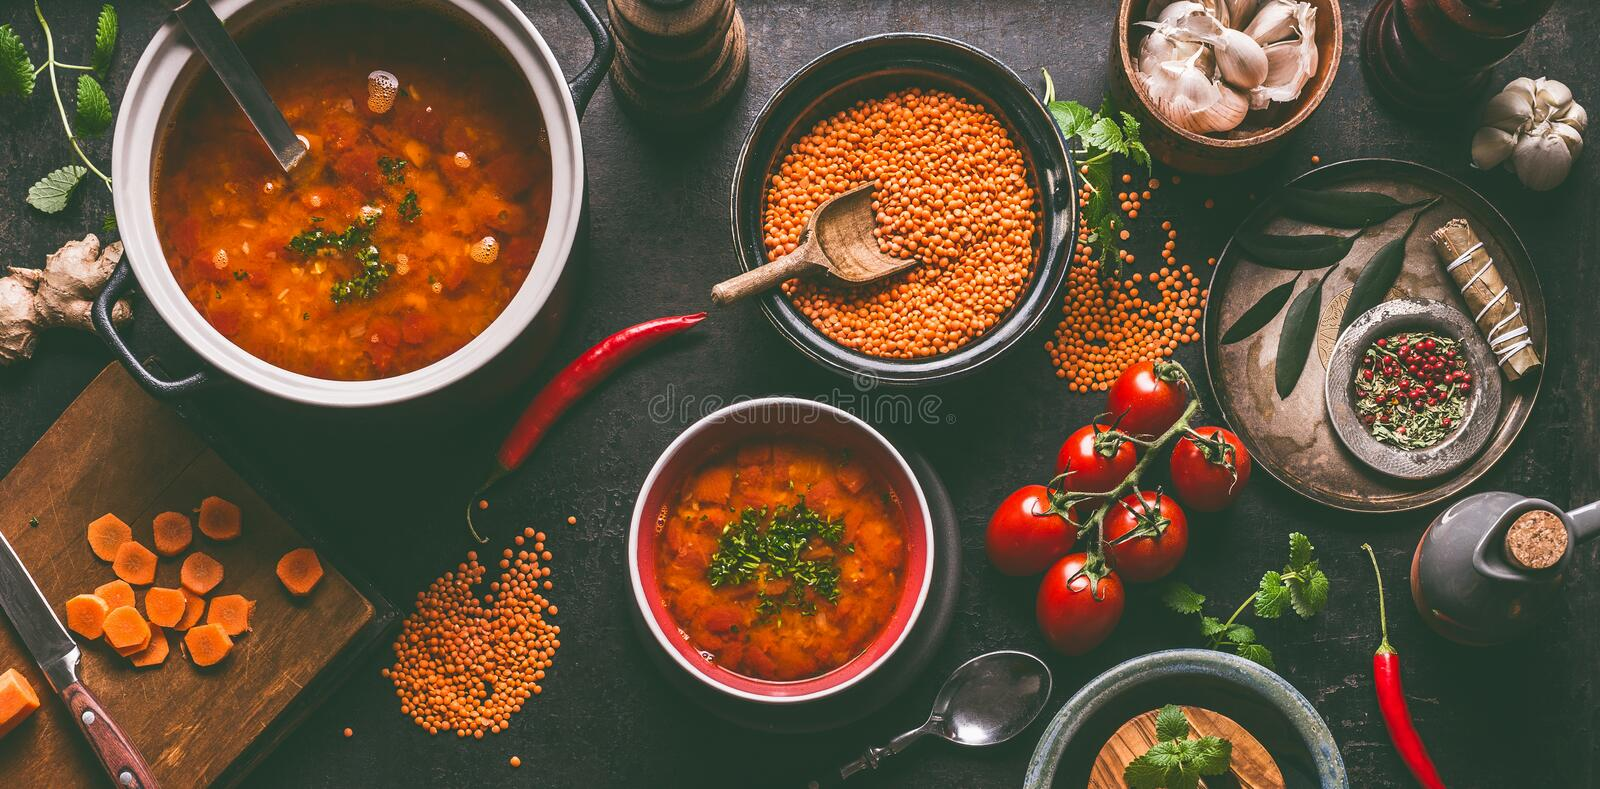 Red lentil soup with cooking ingredients on dark rustic kitchen table background, top view. Healthy vegan food concept. Vegetarian royalty free stock images